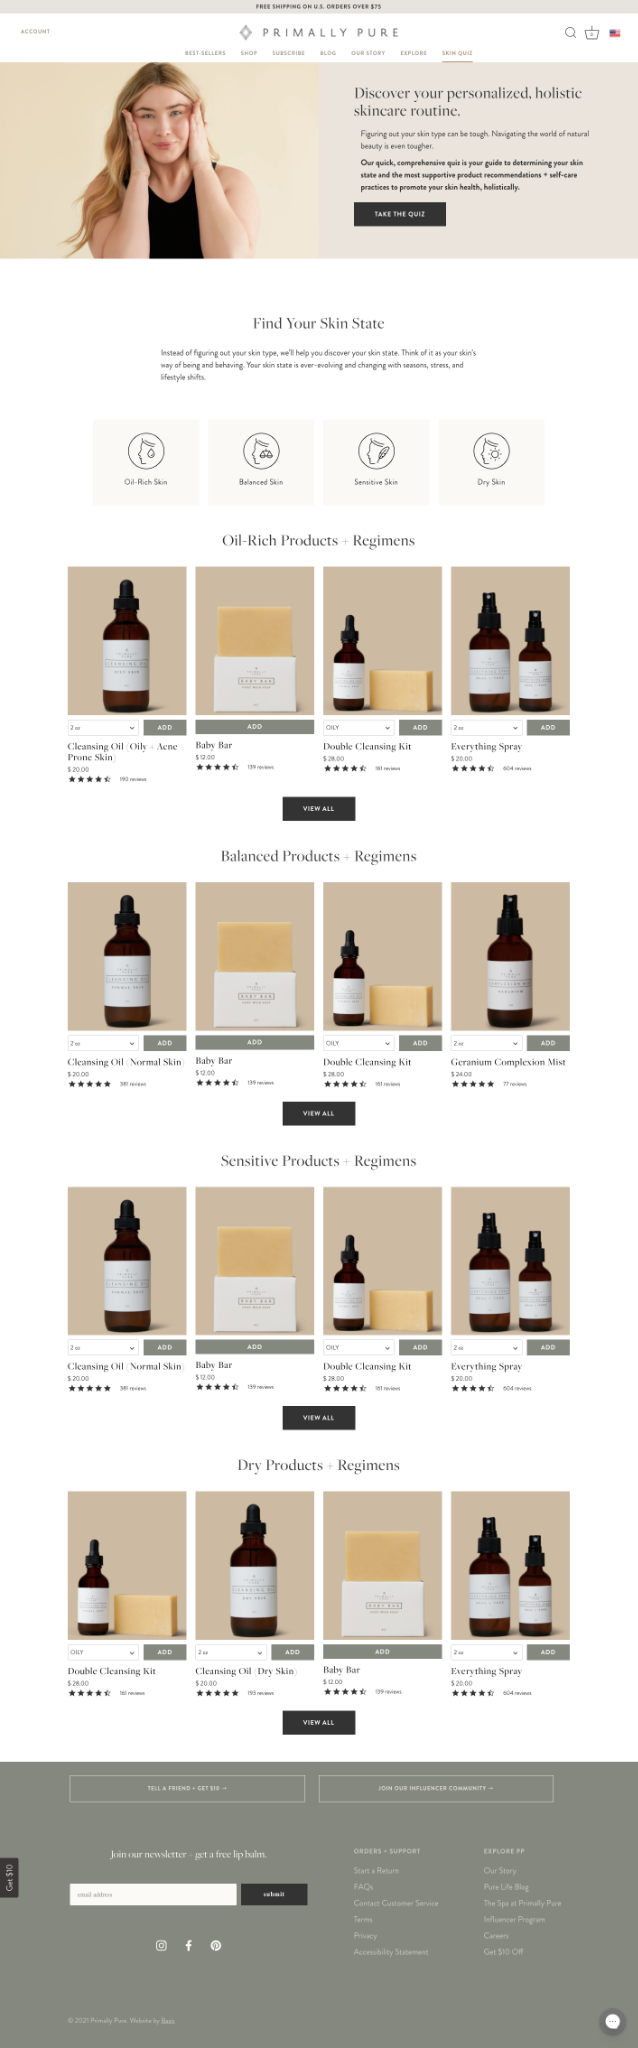 full landing page with shoppable products